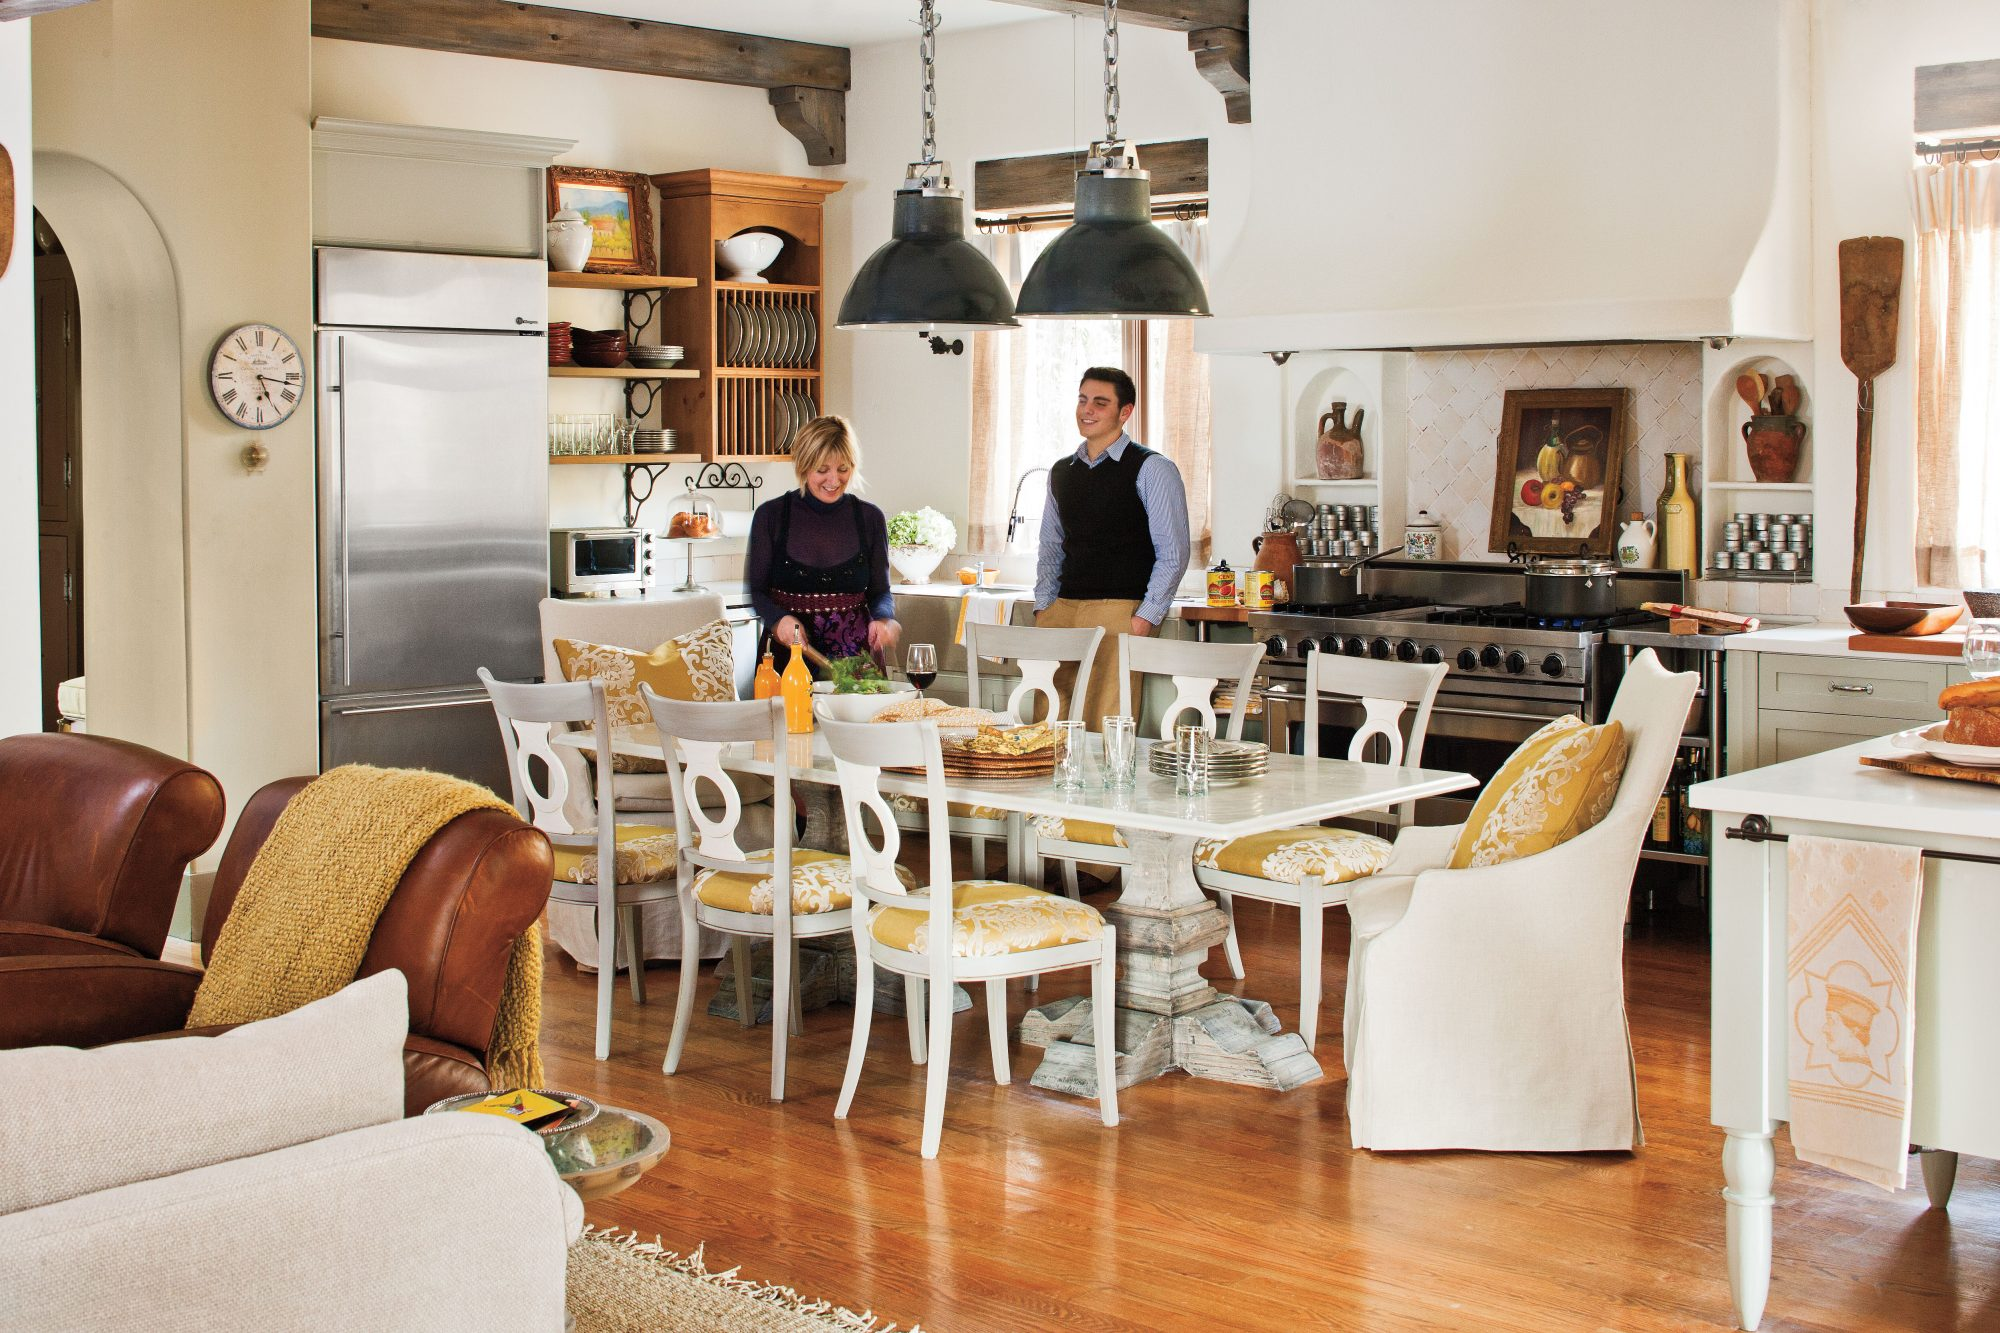 Dream Kitchen Design Ideas: Seating for Eight